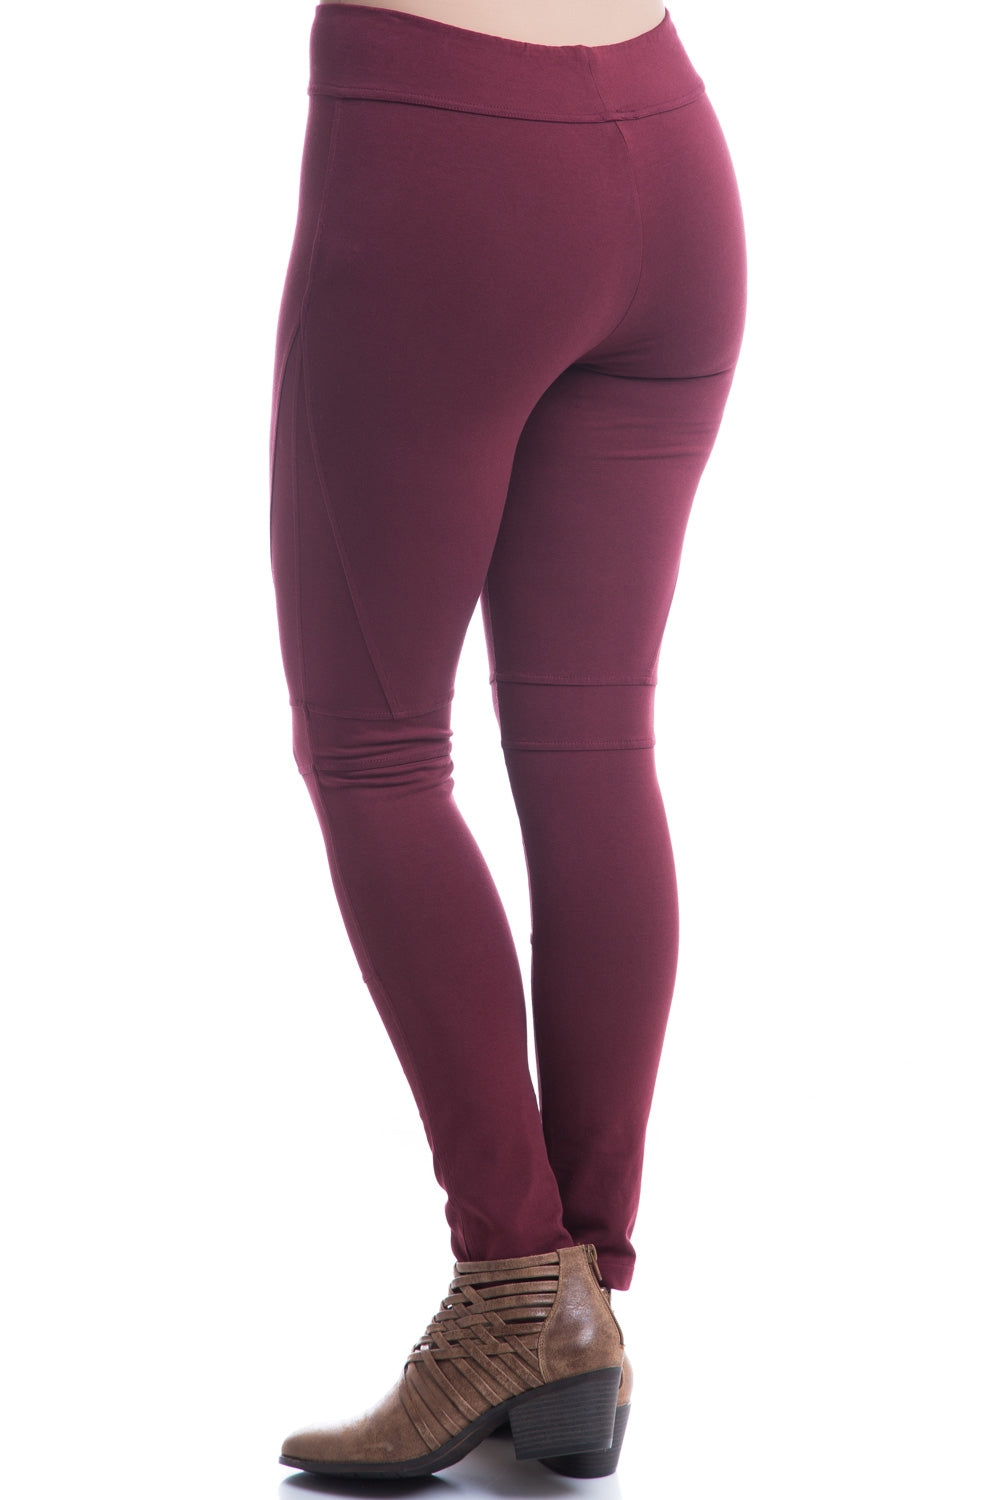 Type 3 Maroon Angles Leggings